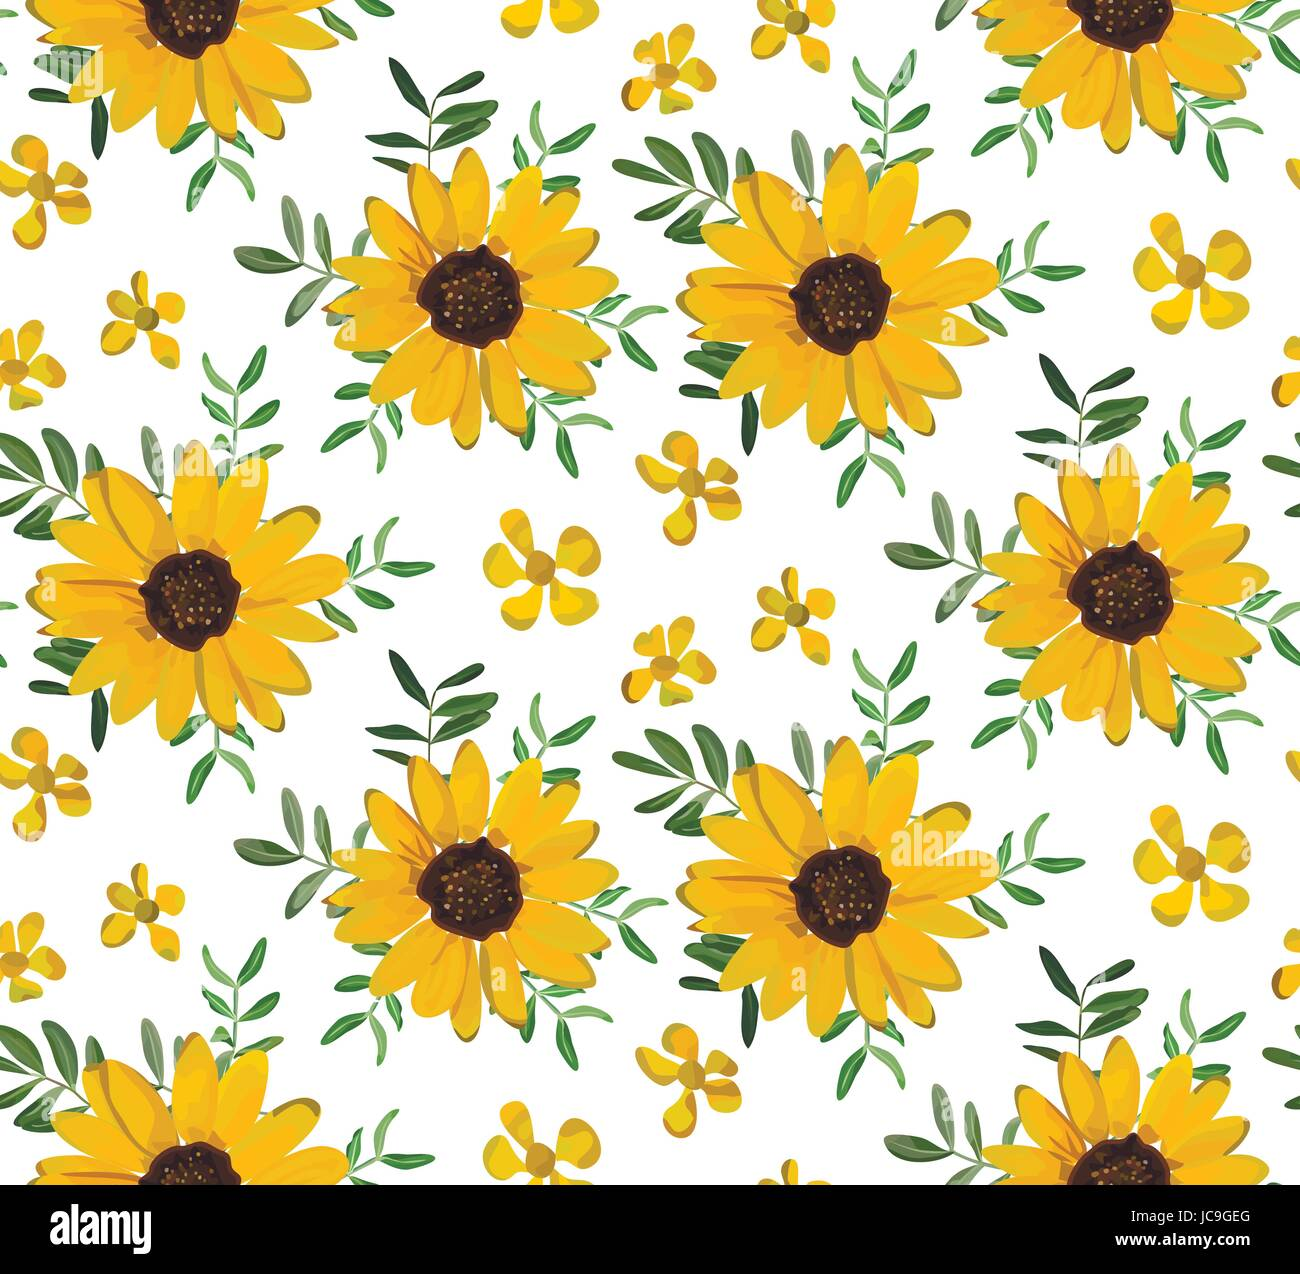 Vintage Yellow Sunflower Tiny Beautiful Soft Flowers Leaves Background Seamless Wallpaper Botanical Floral Design Watercolor Illustration For Textil